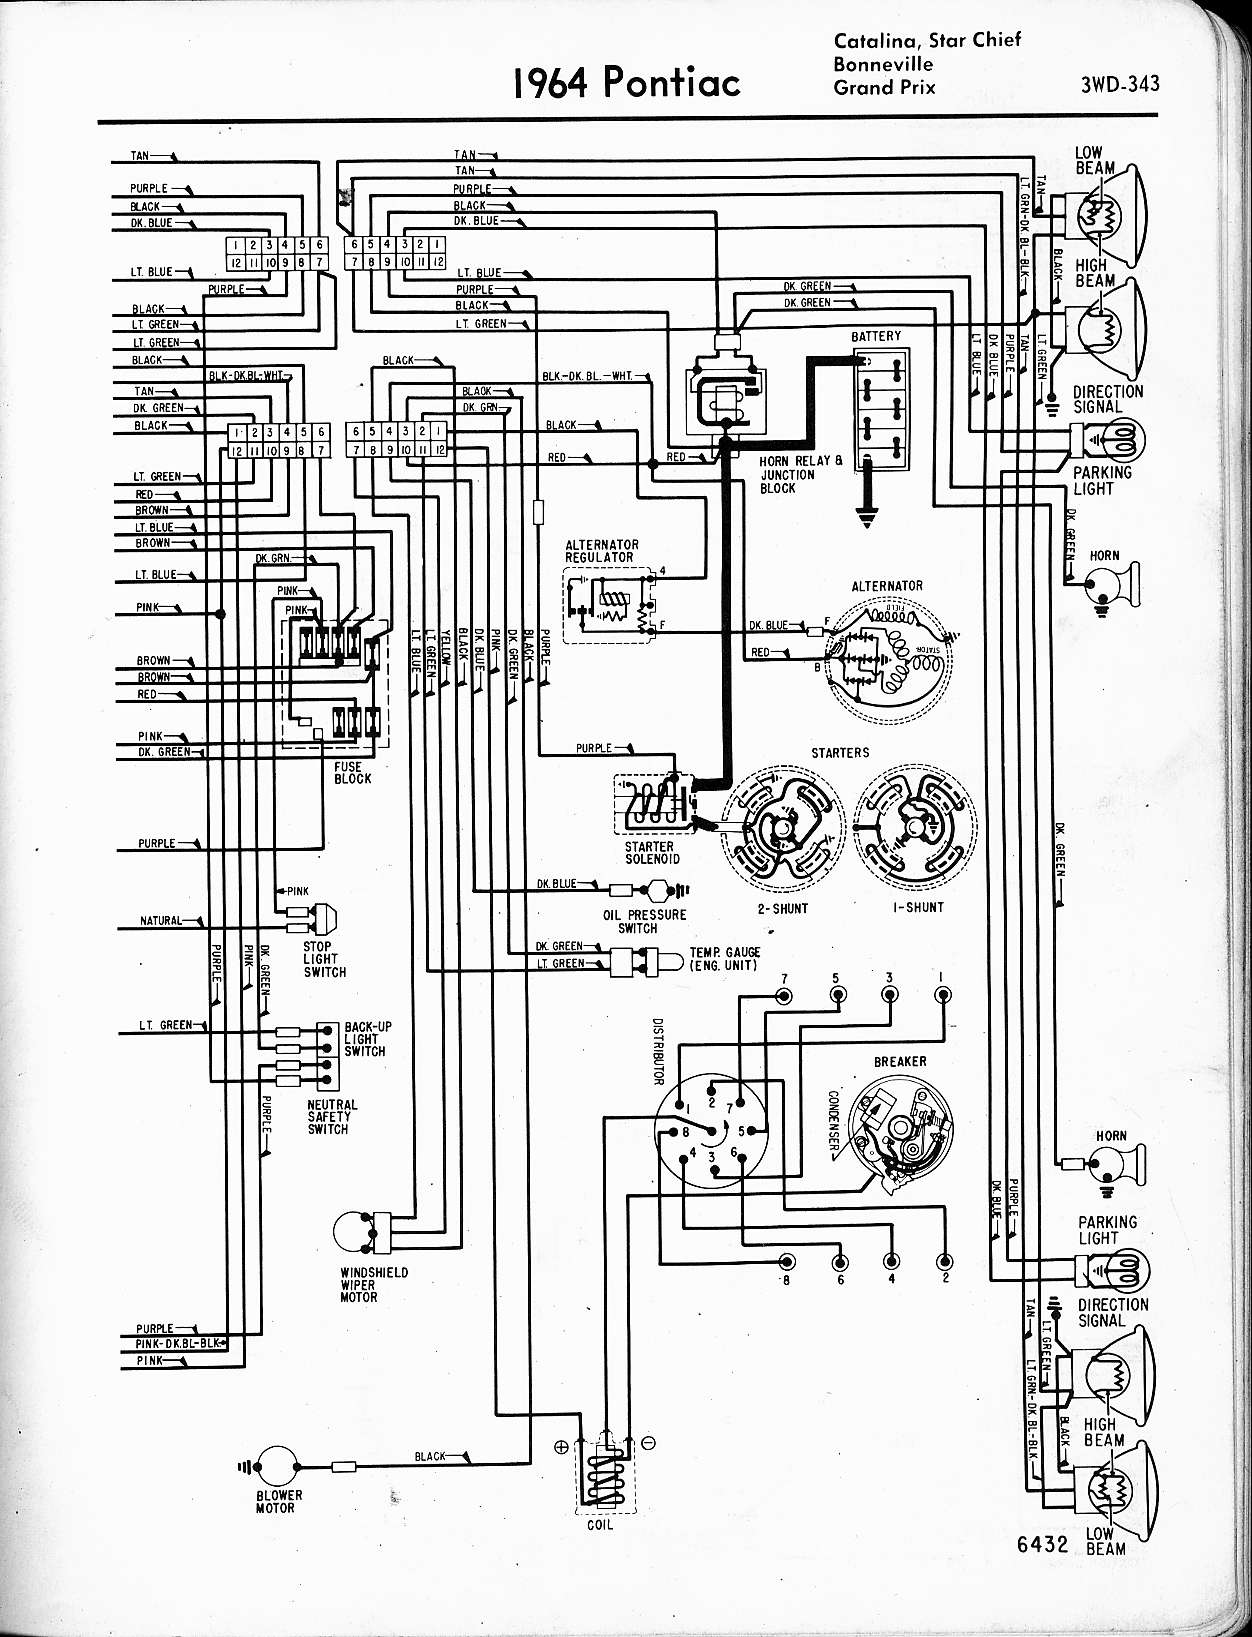 1969 pontiac wiring diagram wiring diagrams schematics rh quizzable co pontiac radio wiring diagram pontiac montana wiring diagram